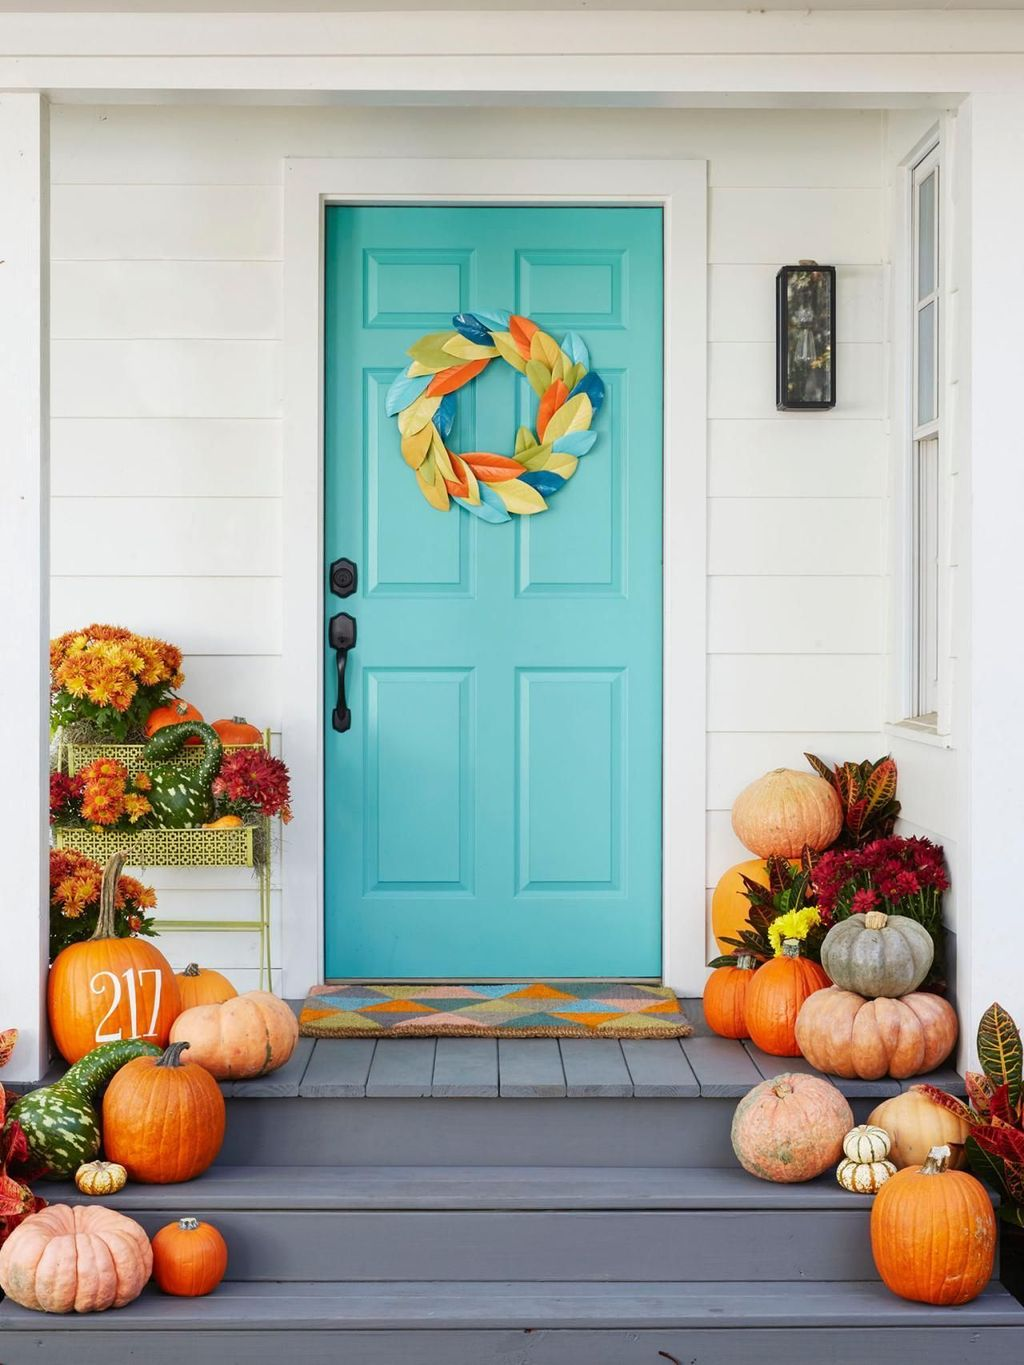 Amazing Front Porch Fall Decor Ideas That You Never Seen Before 02